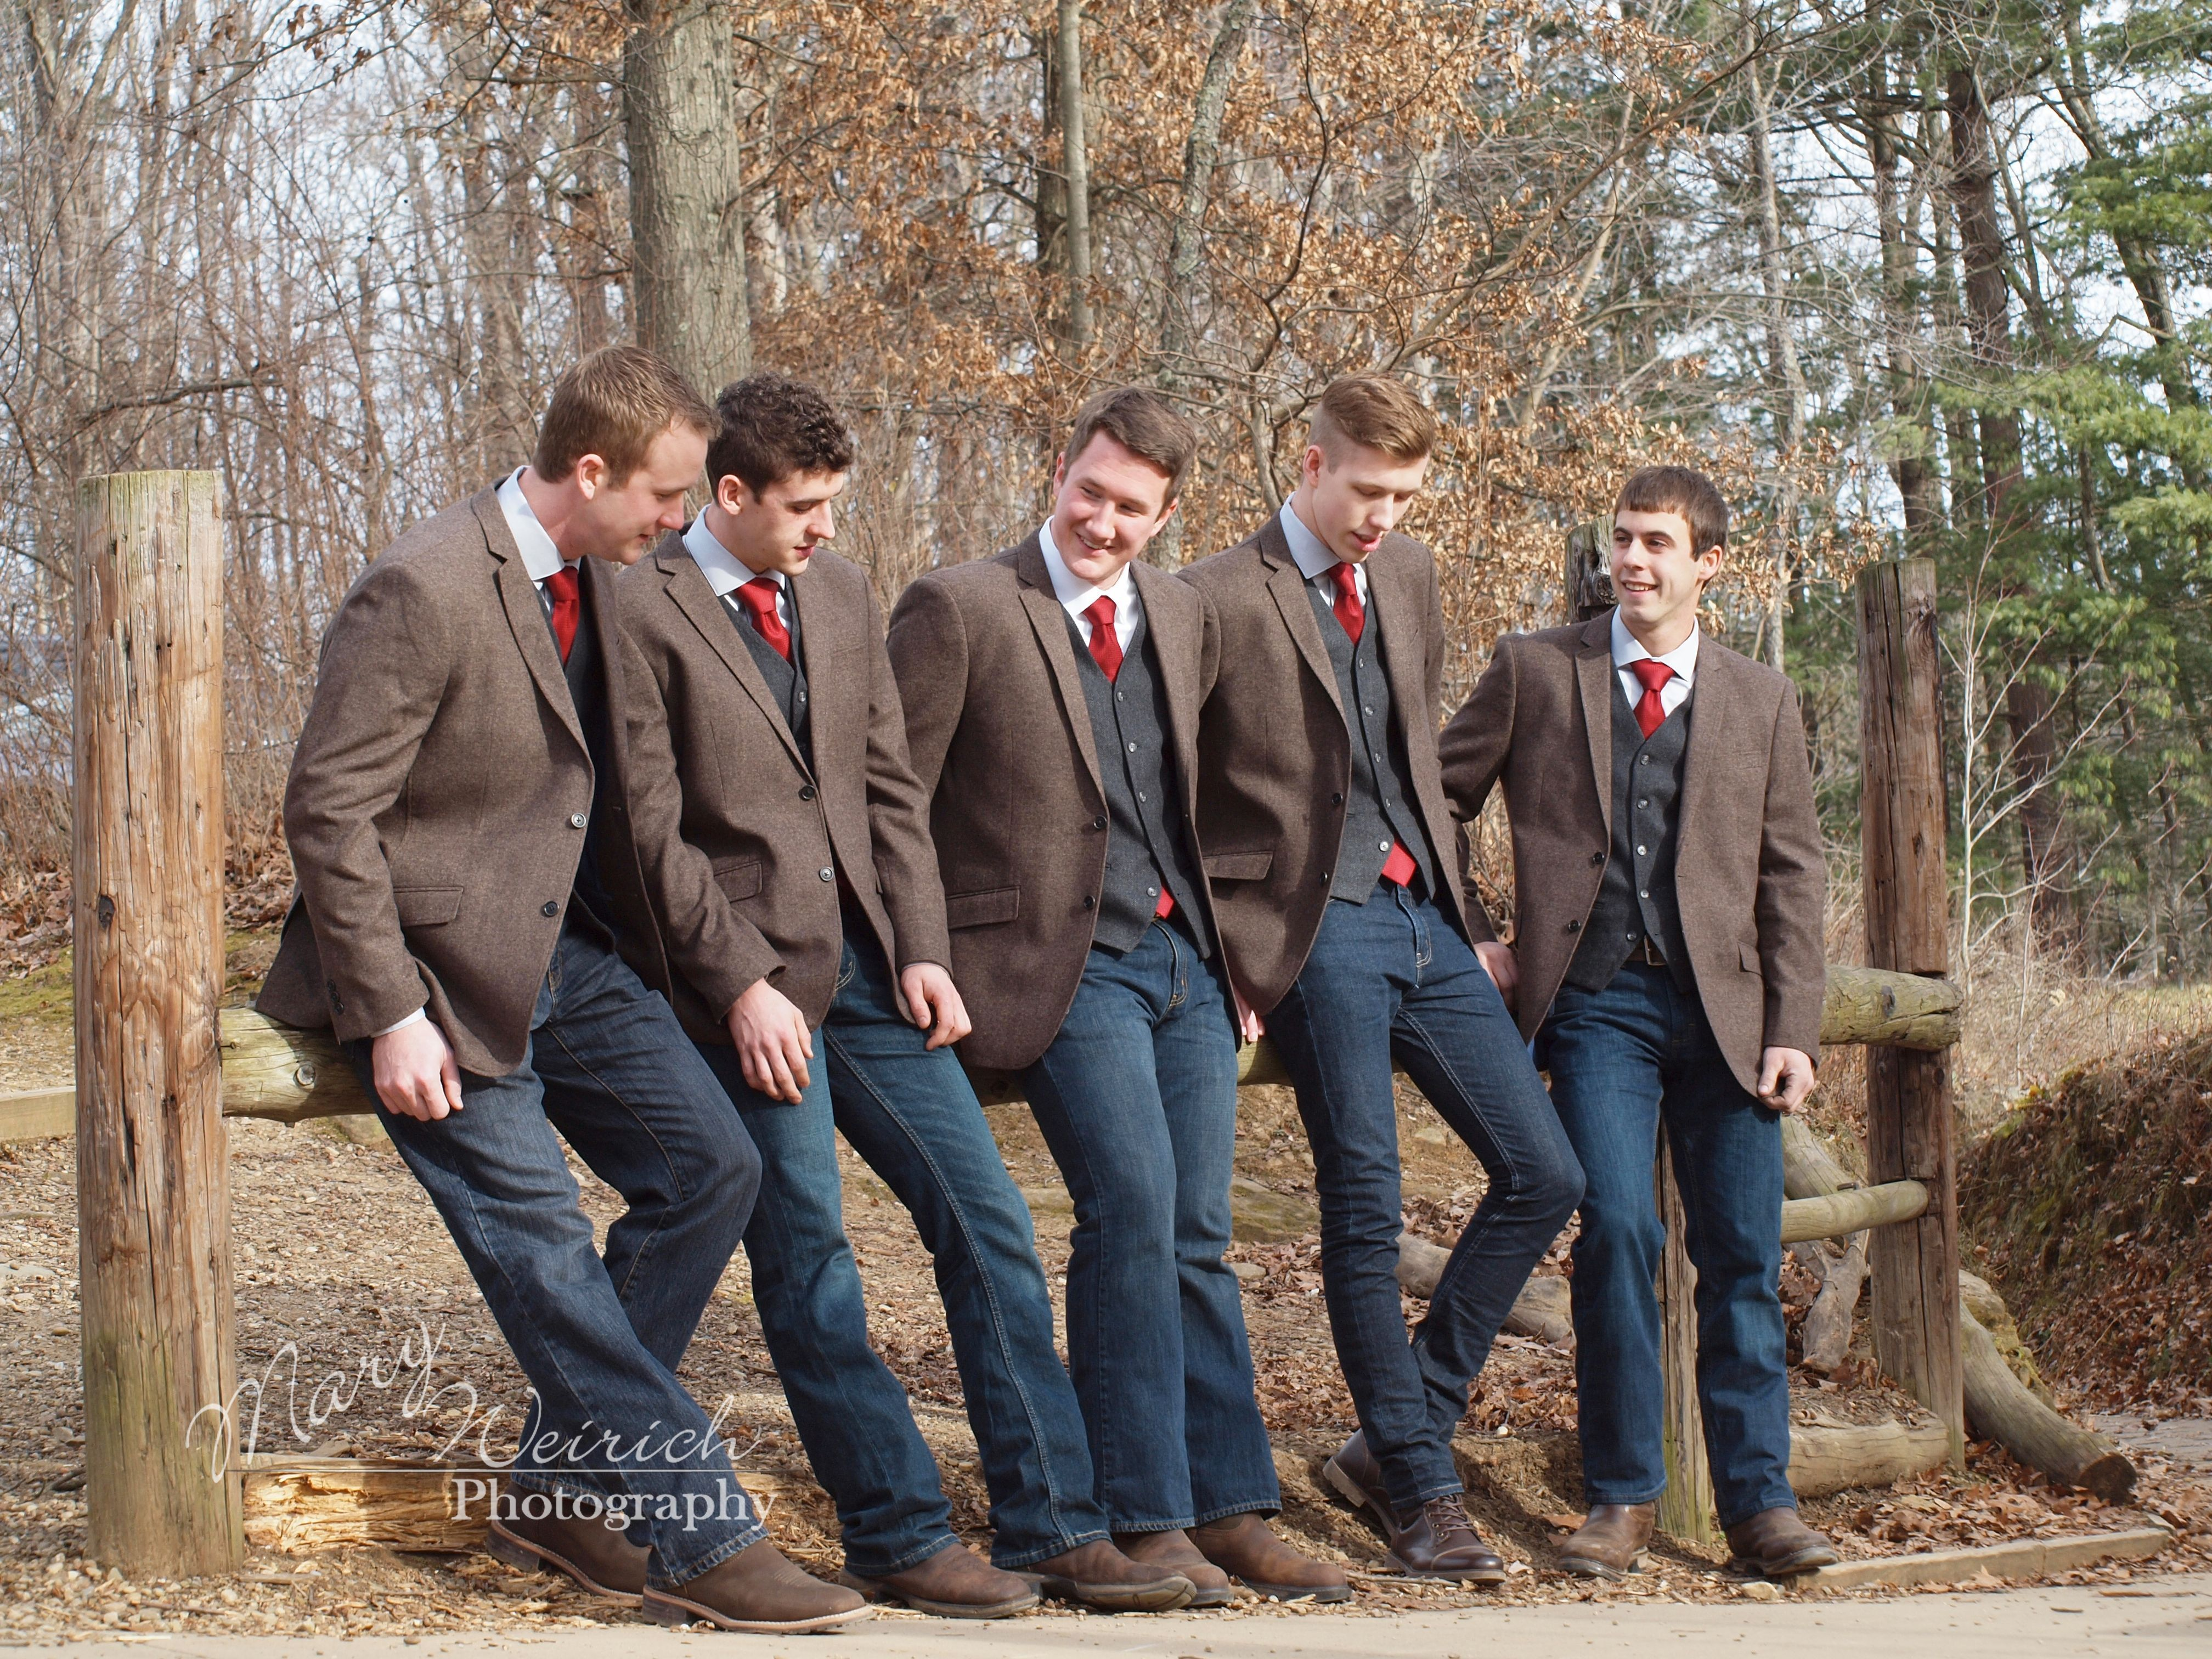 Groom and Groomsmen in casual wedding attire. Jeans, brown jackets ...